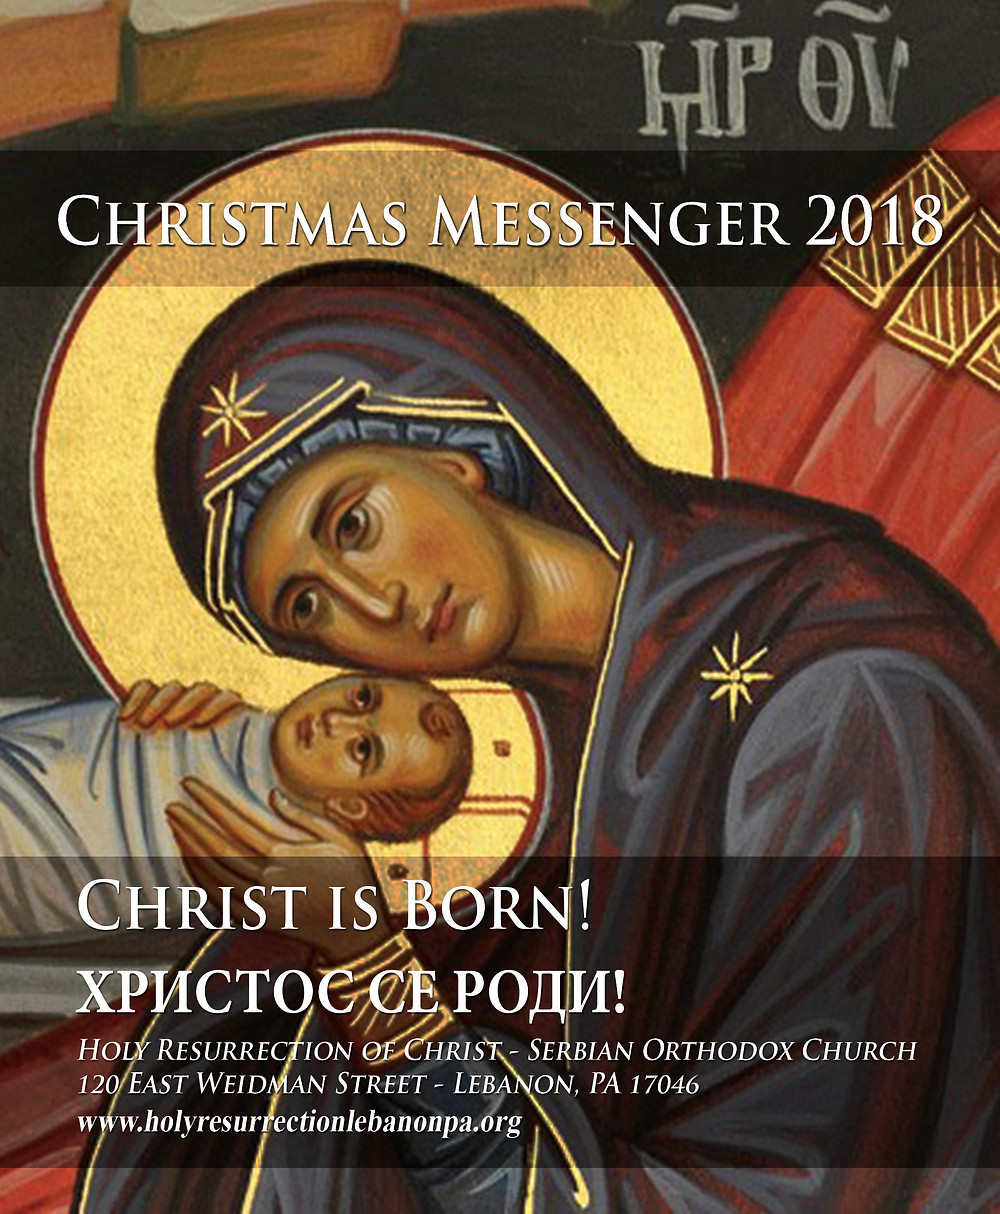 Christmas Messenger COVER 2018 with layers ORIGINAL